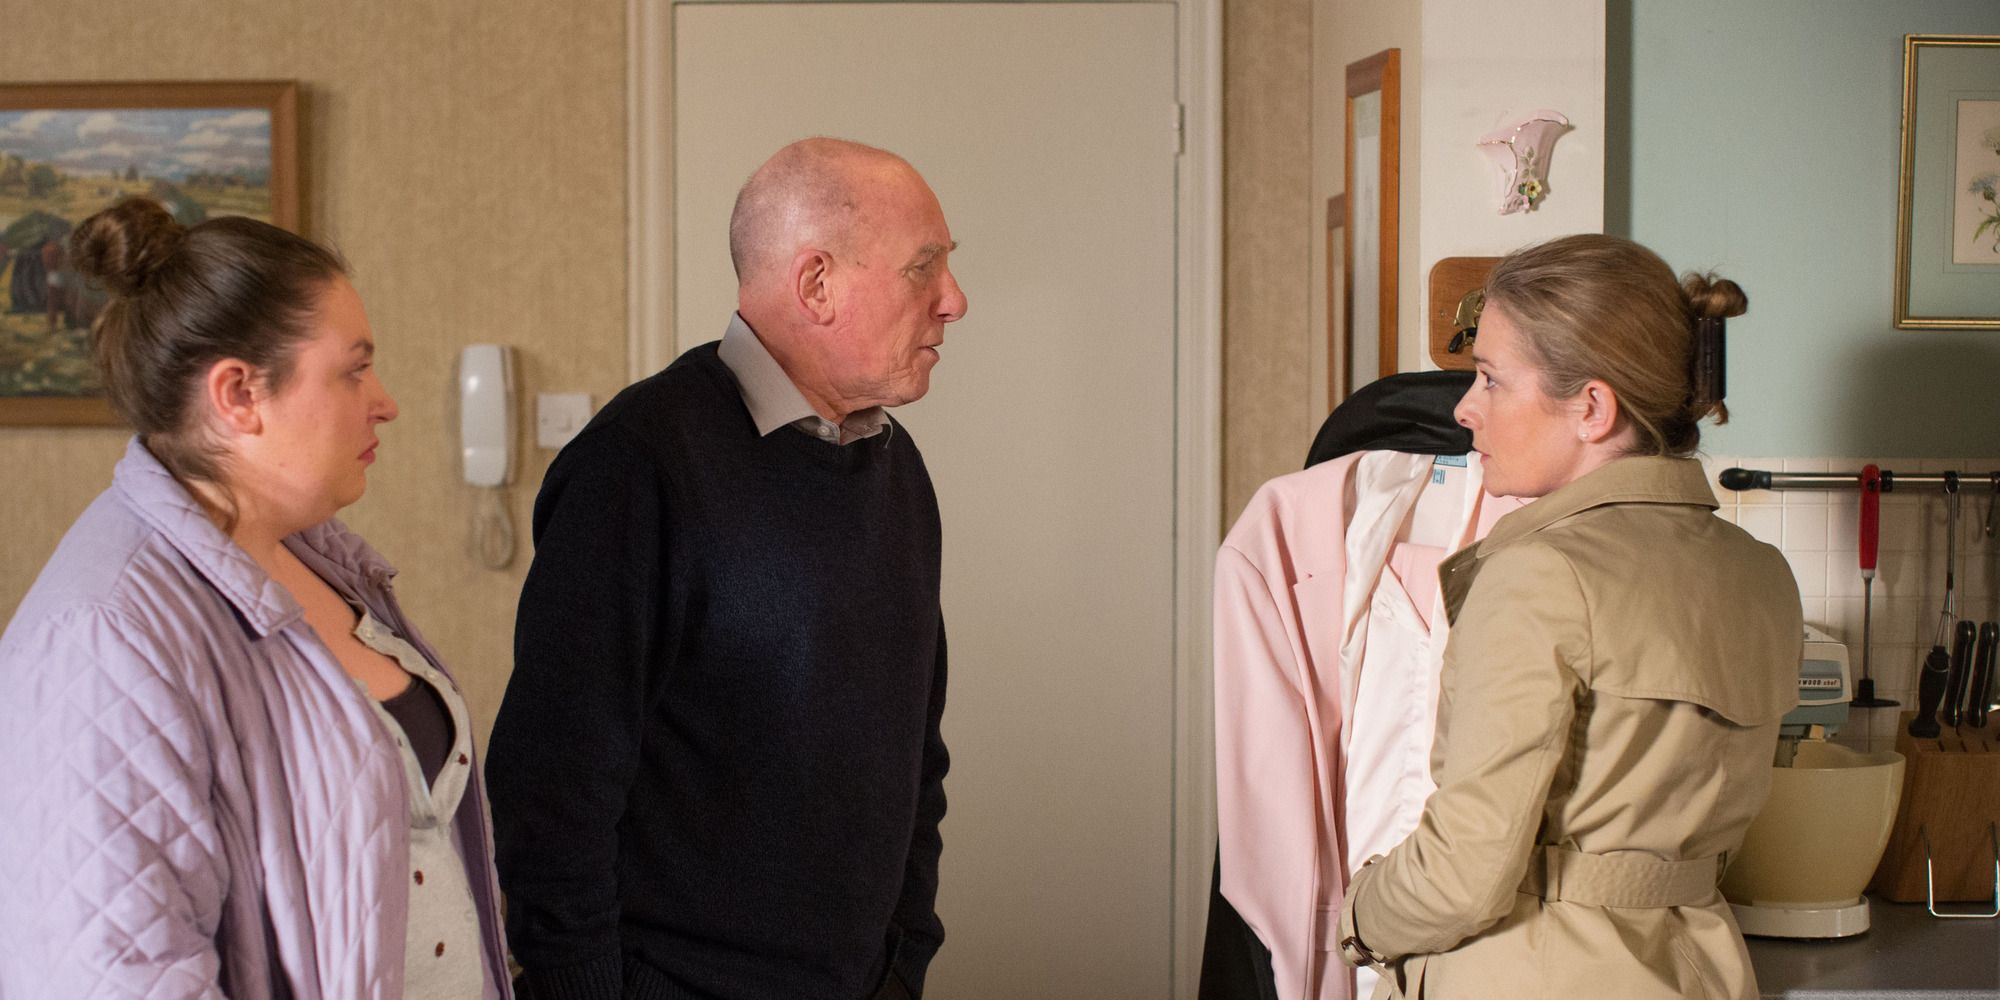 Bernadette Taylor sees Ted and Judith Murray continue to clash in EastEnders